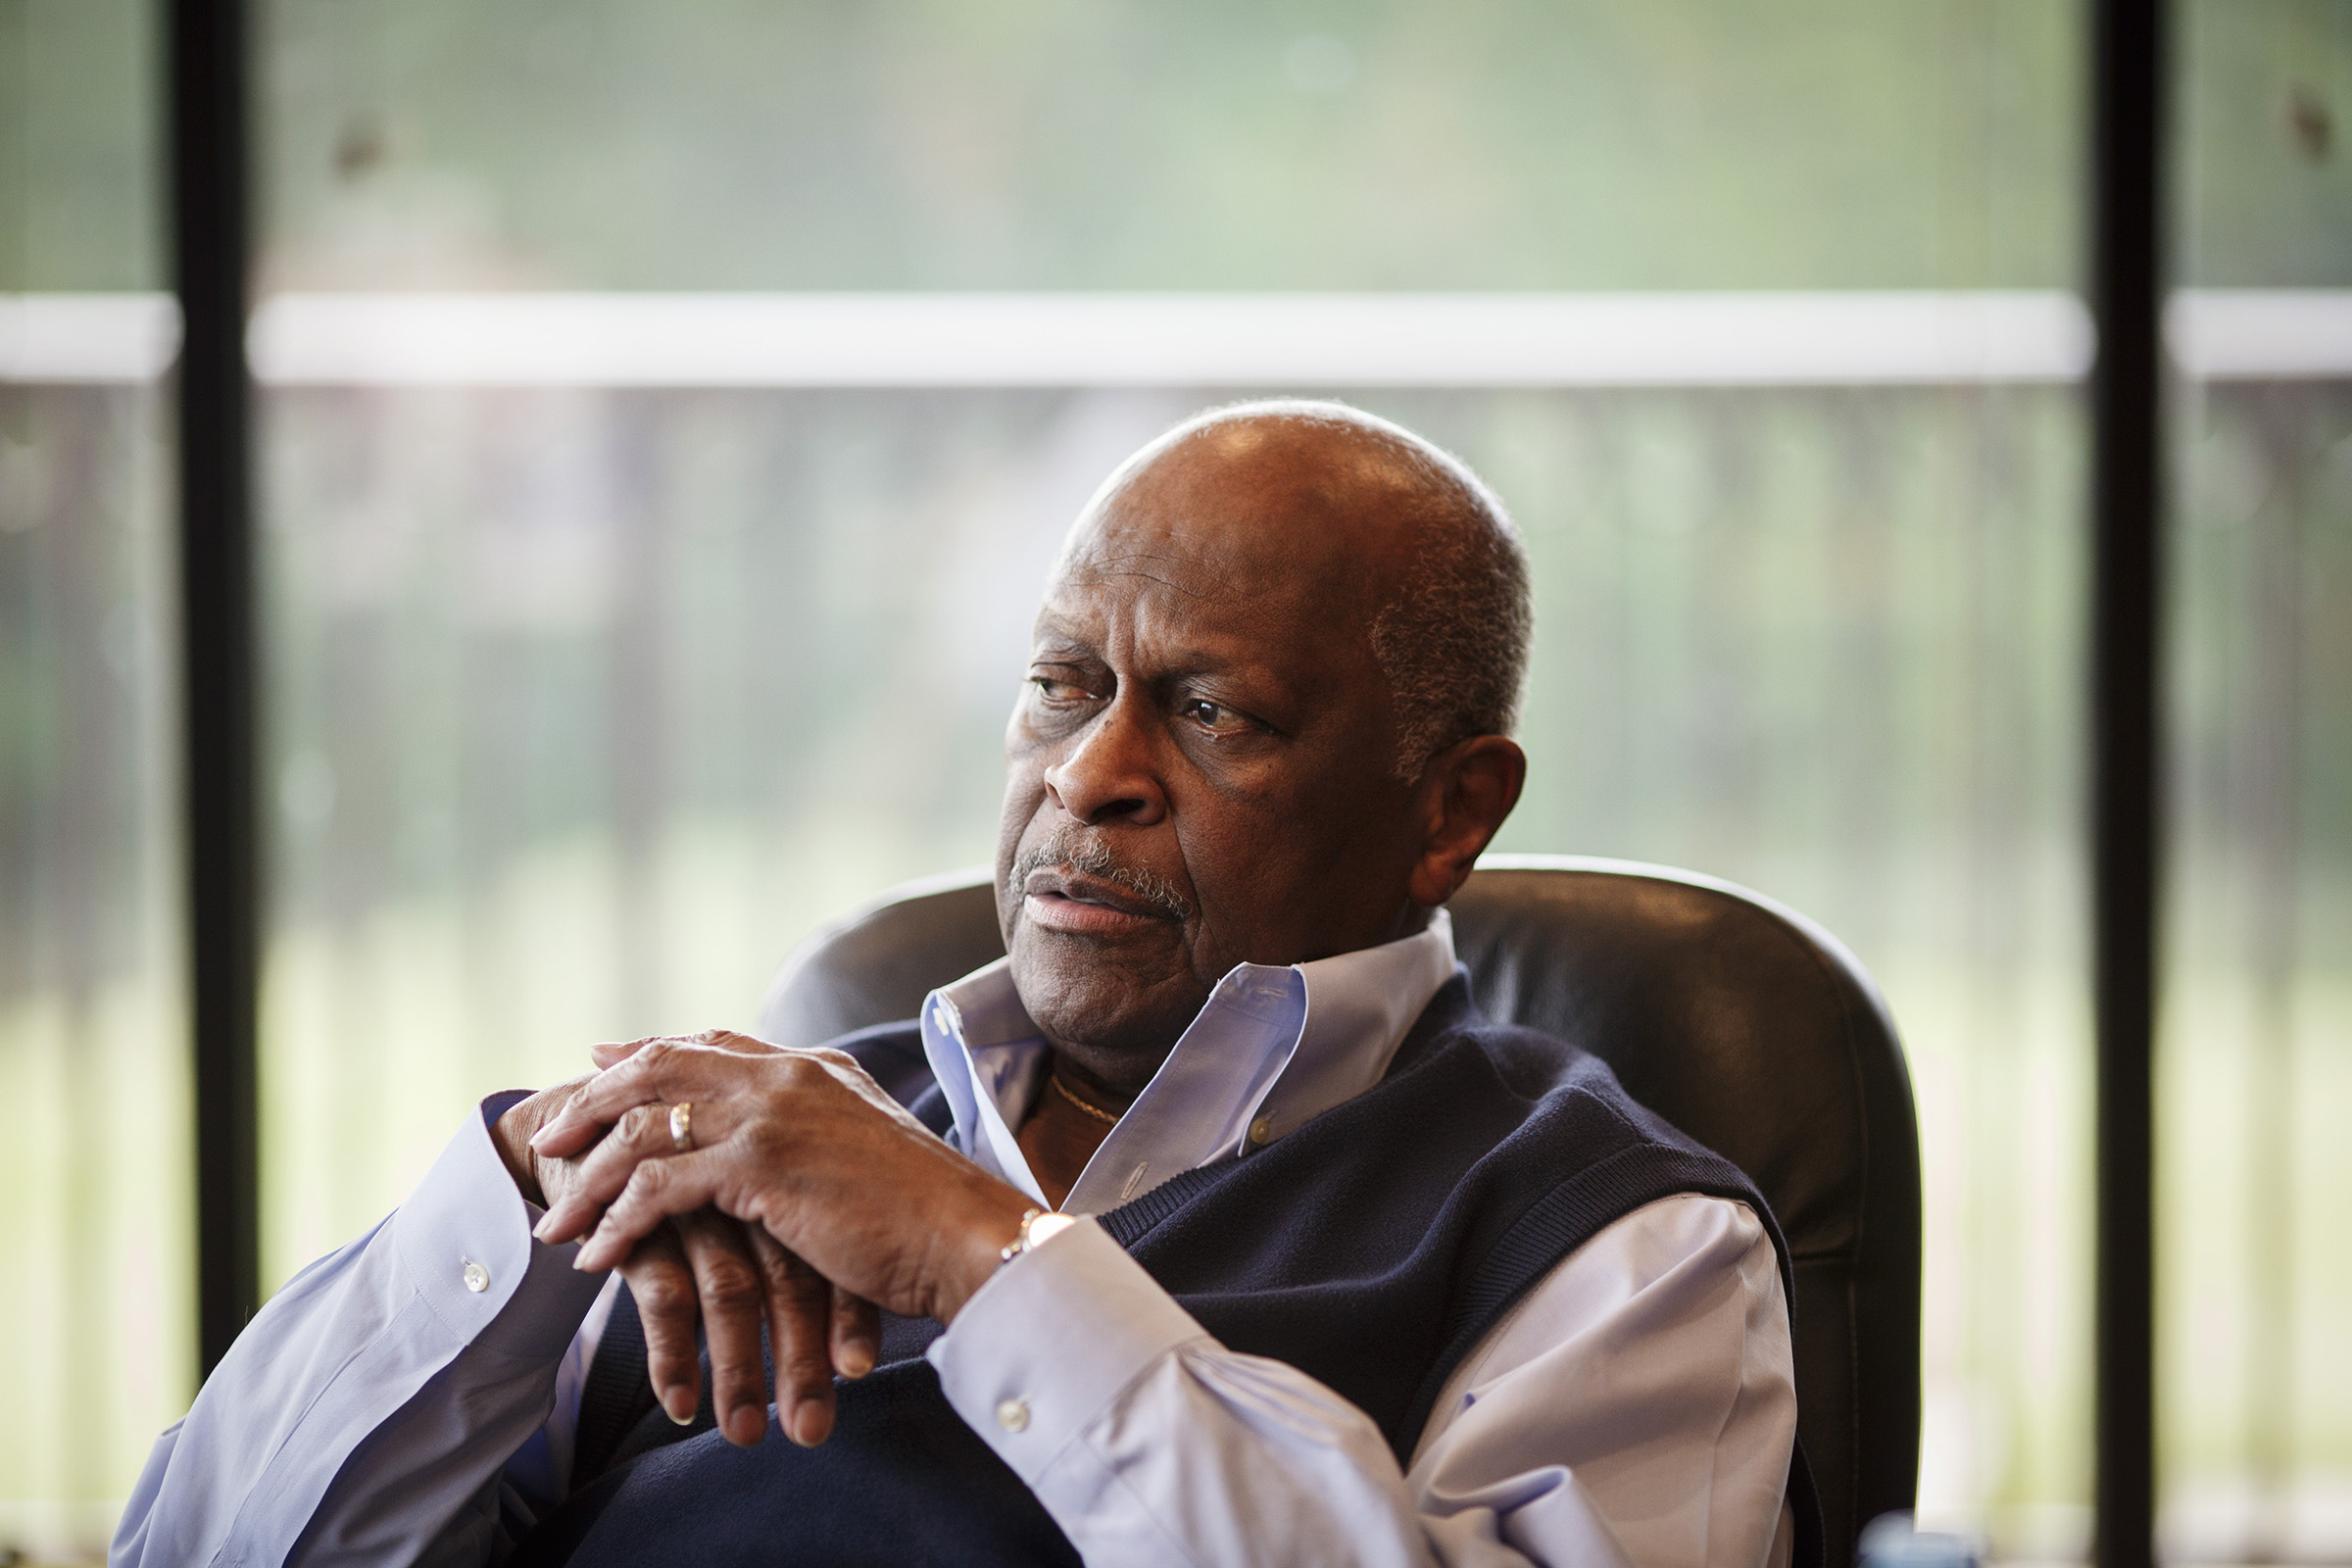 Herman Cain in his office in Stockbridge, Ga. on April 17, 2019.